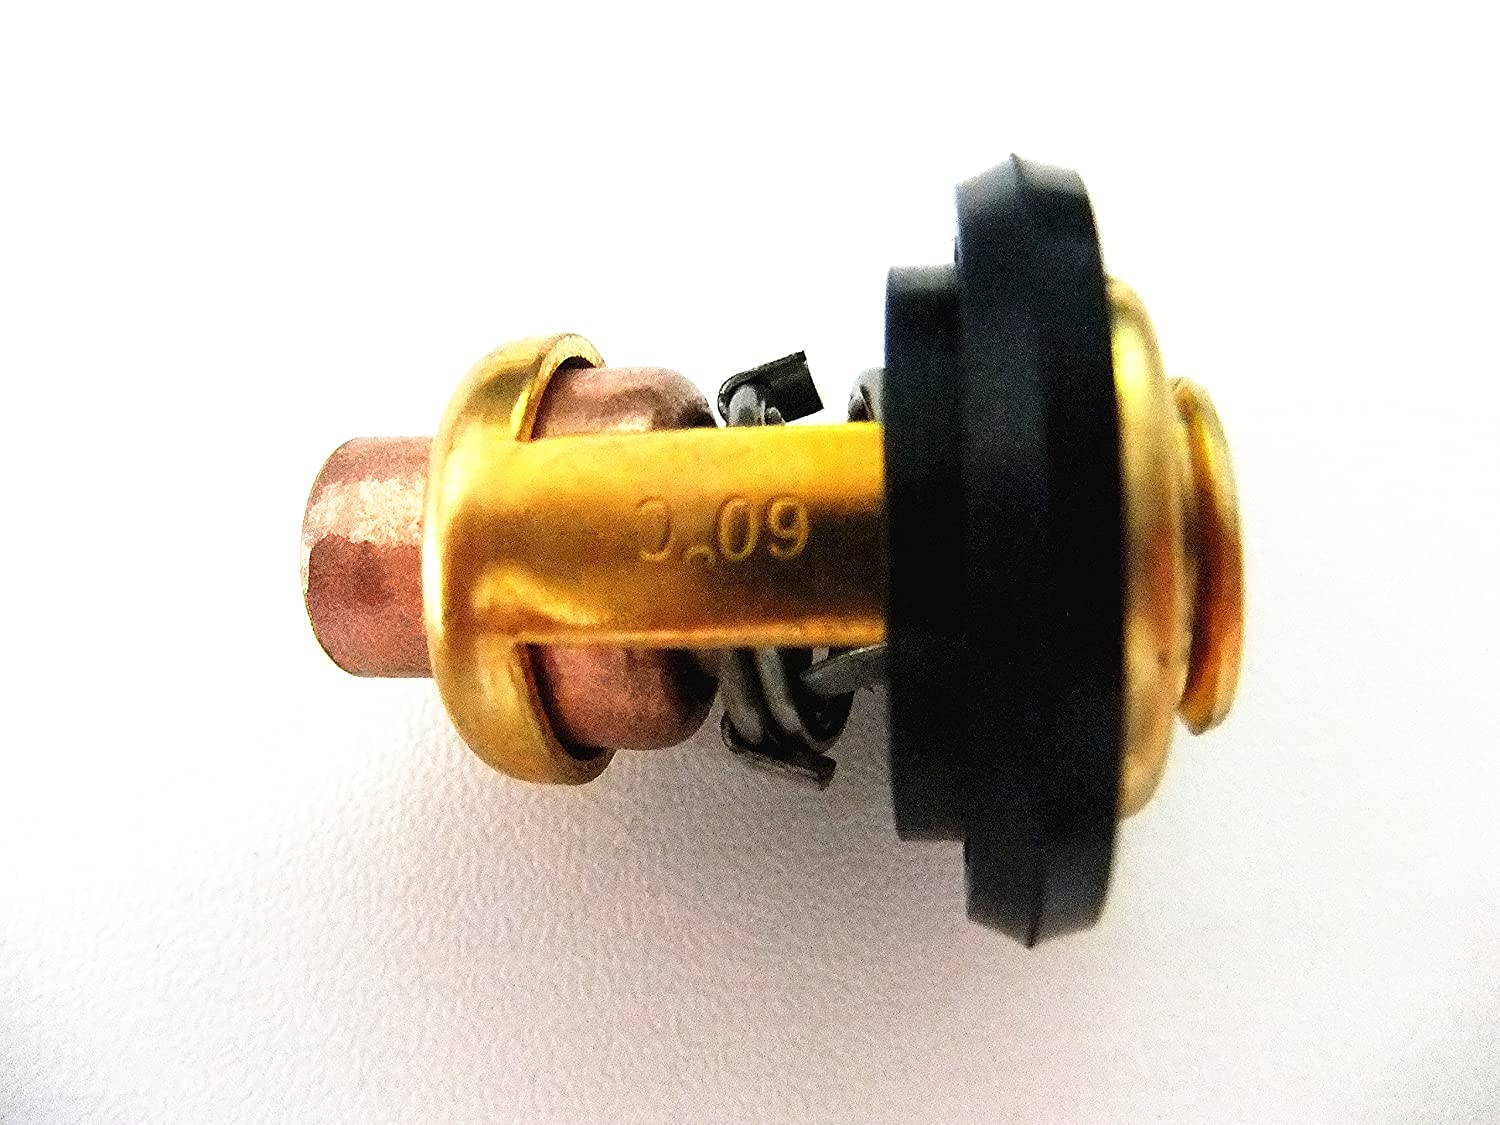 Boat Motor Thermostat 66M-12411-00-00 66M-12411-01-00for Yamaha 4-Stroke 2.5HP 4HP 8HP 15HP 30HP 40HP 50HP 60HP 70HP 80HP Outboard Engine SouthMarine